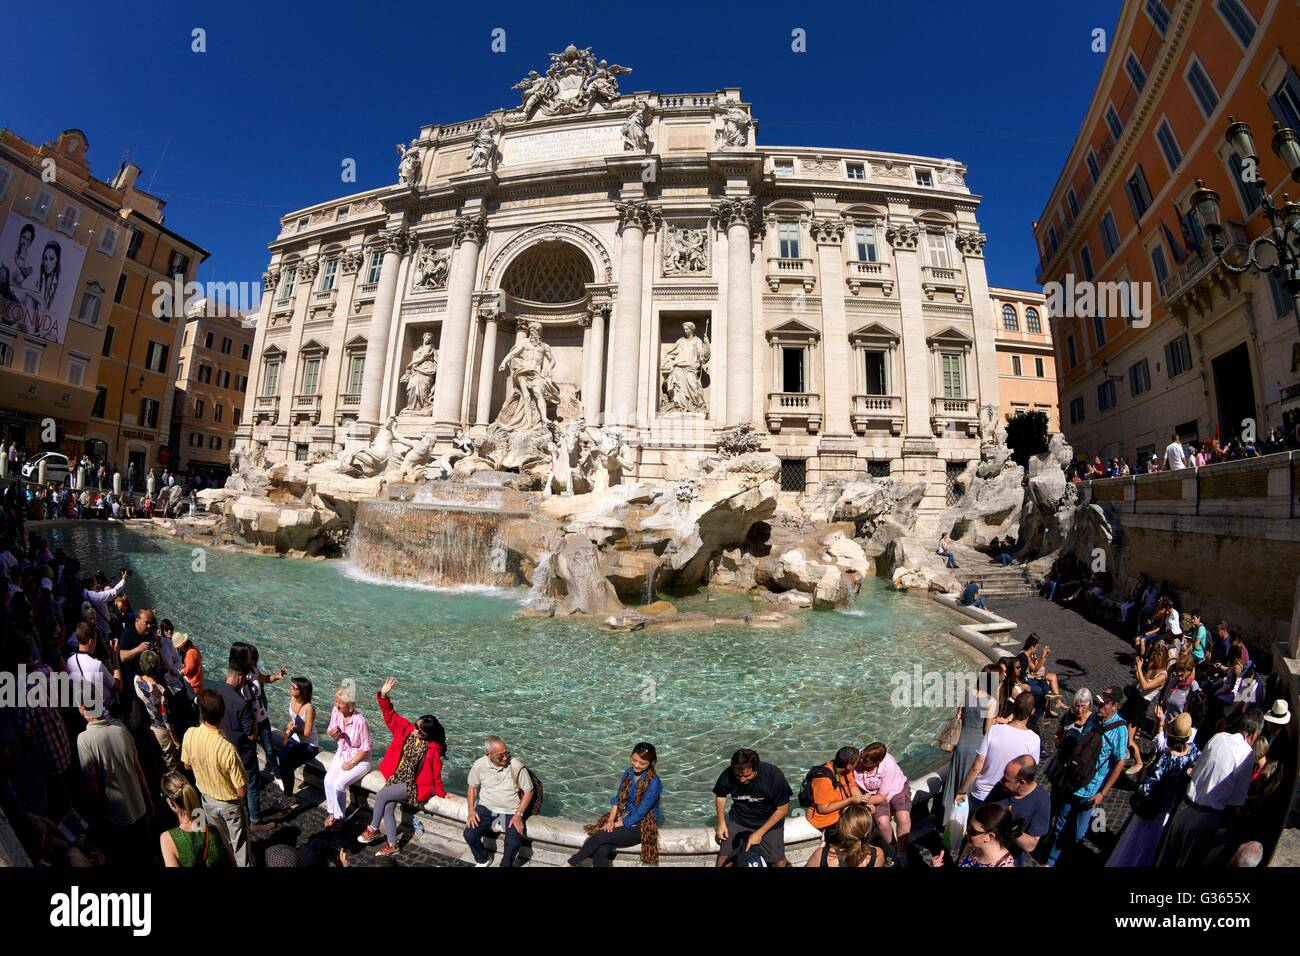 Crowds of tourists at the Trevi Fountain, Rome, Italy, Europe Stock Photo